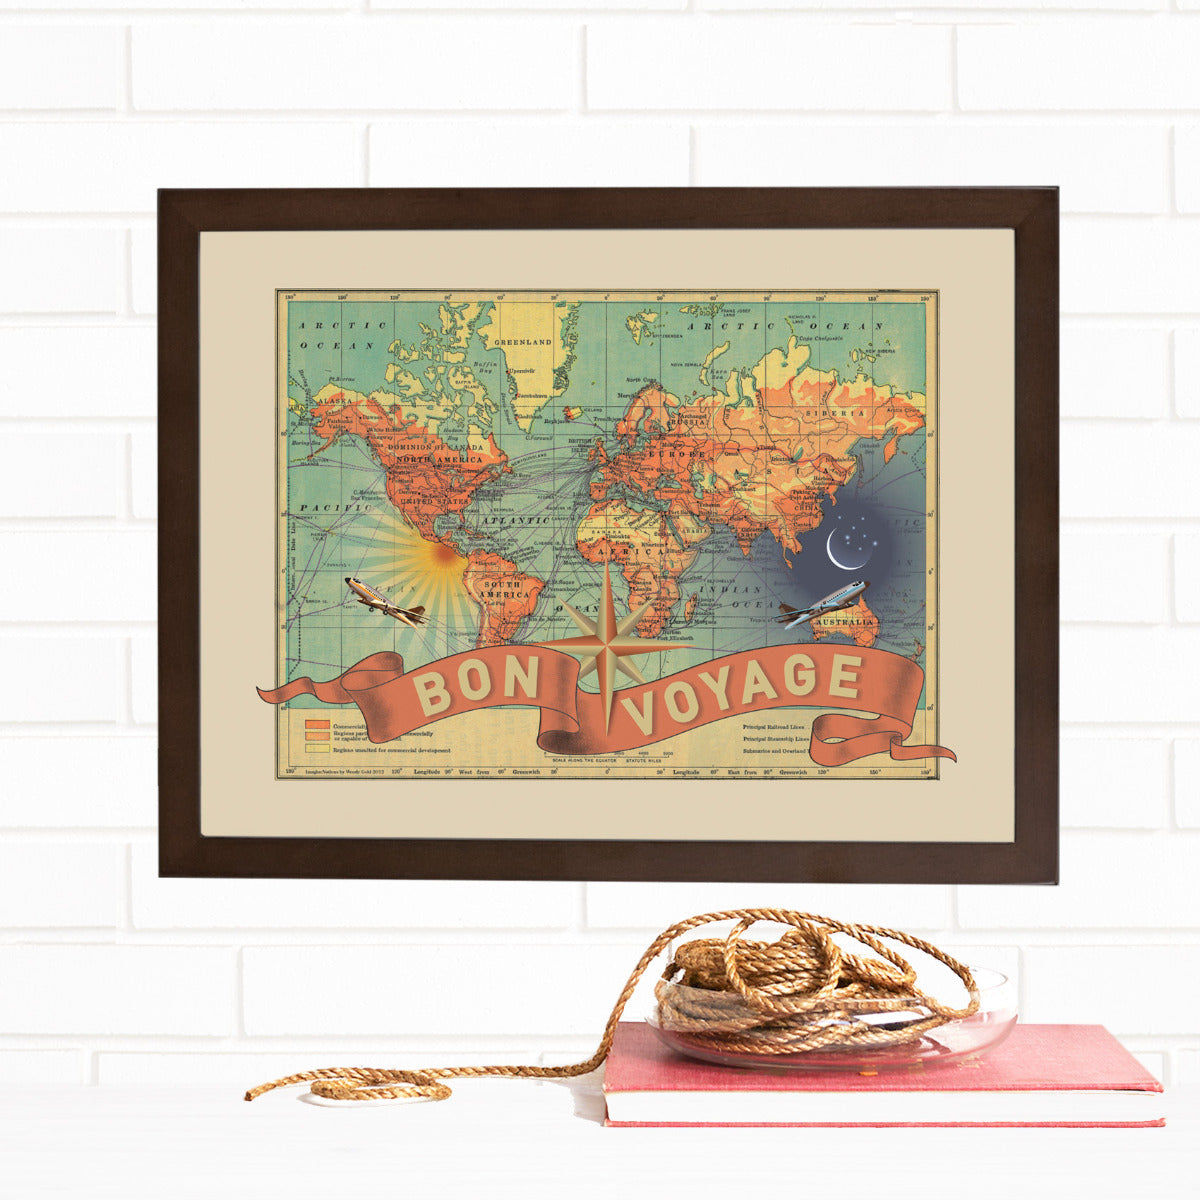 Bon Voyage Travel Map Wall Art by Wendy Gold